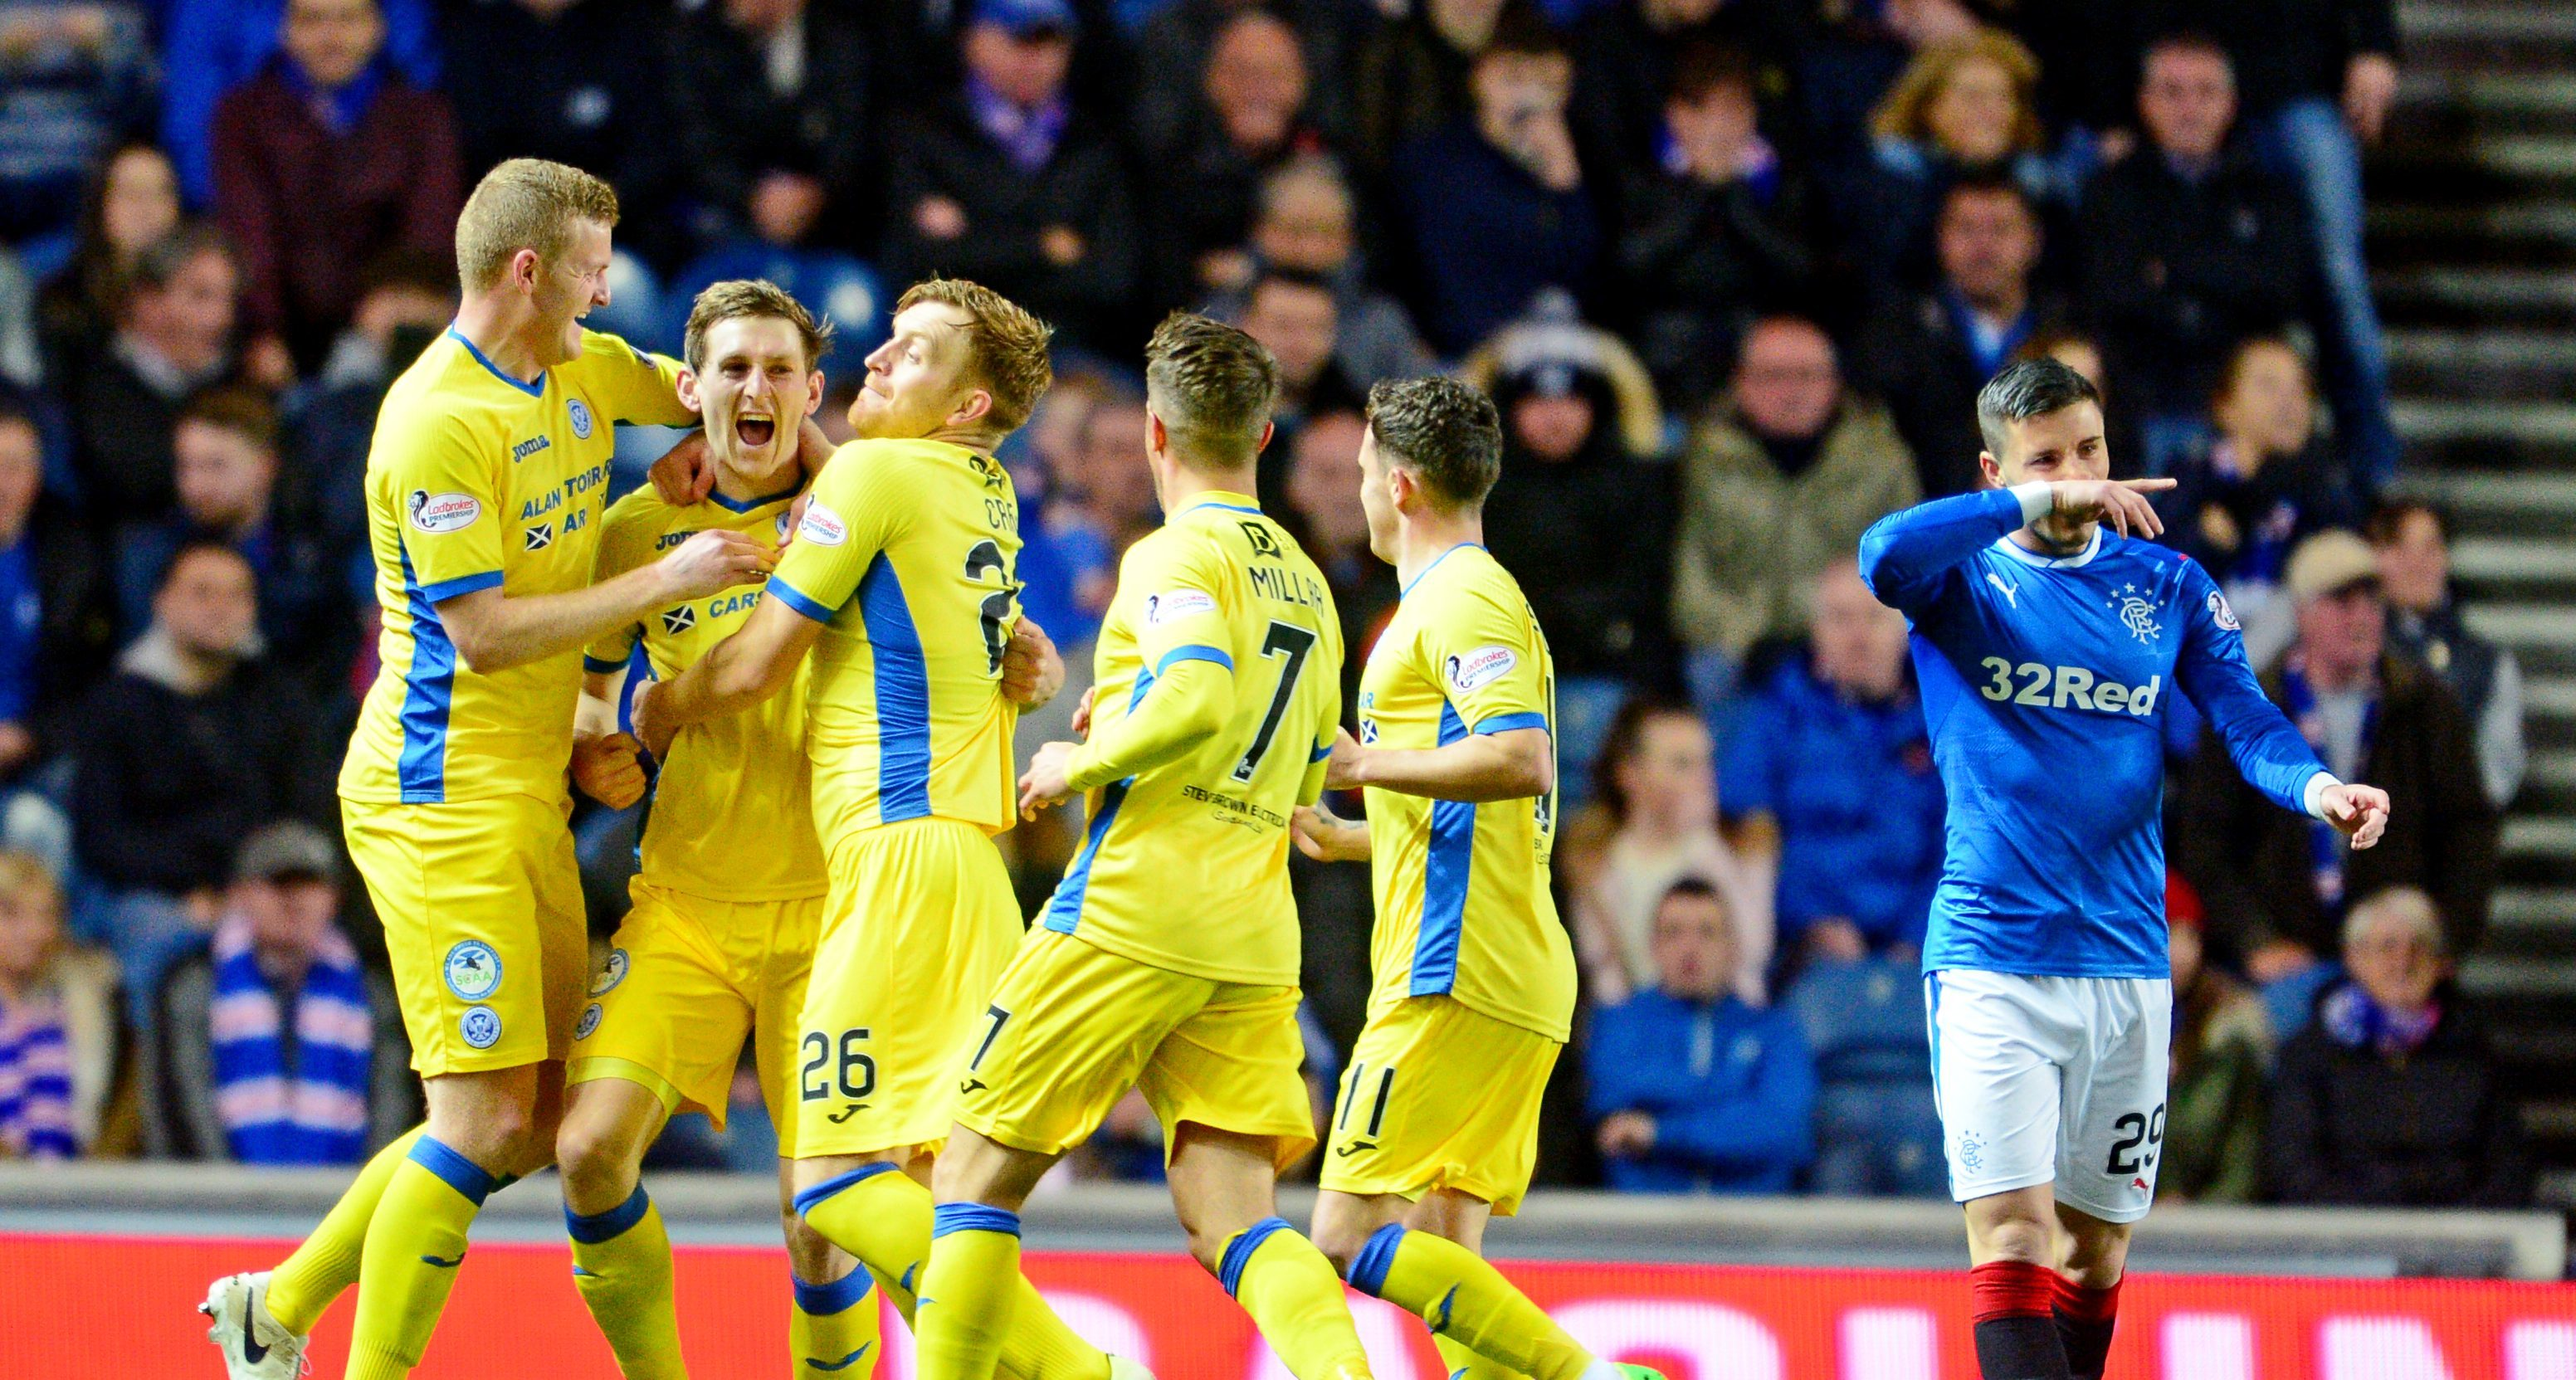 The St Johnstone players celebrate after Blair Alston scored his stunning goal at Ibrox.